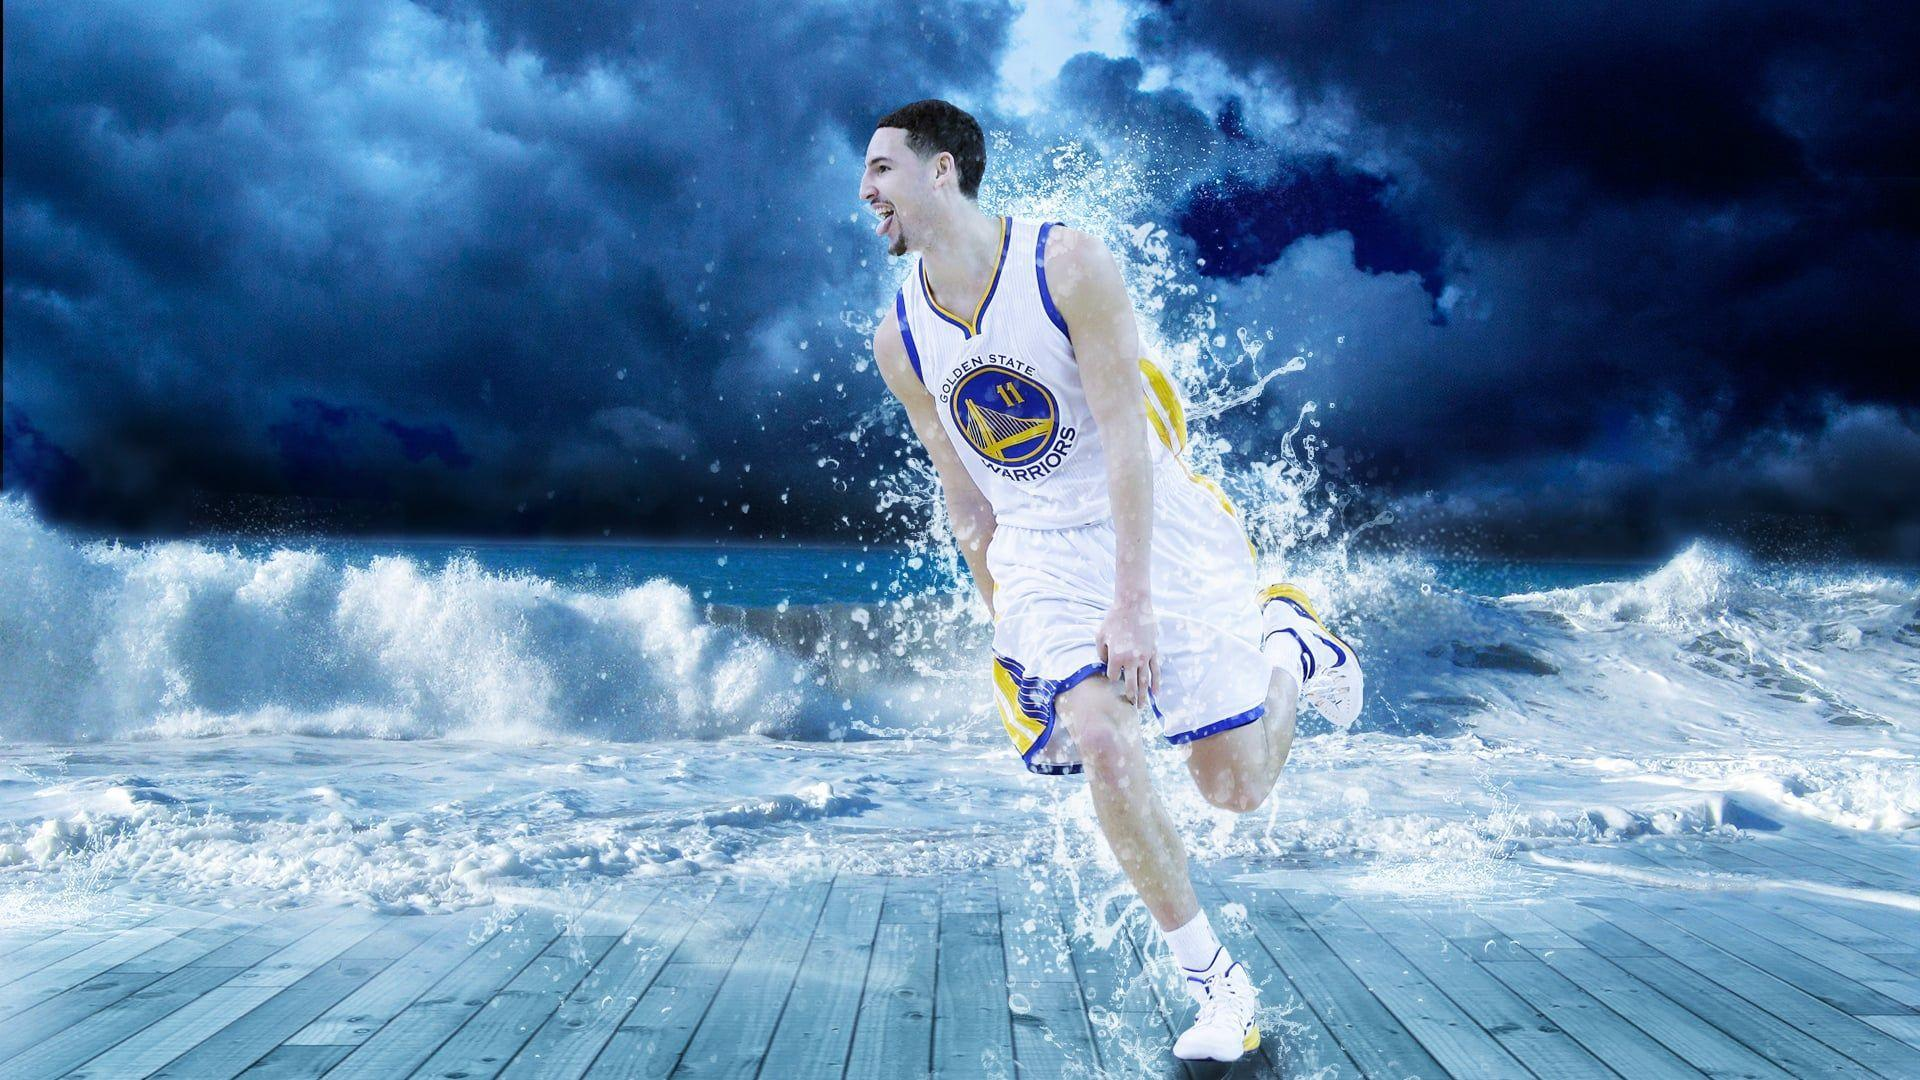 Stephen Curry Wallpaper Iphone 6 Klay Thompson Wallpapers Wallpaper Cave